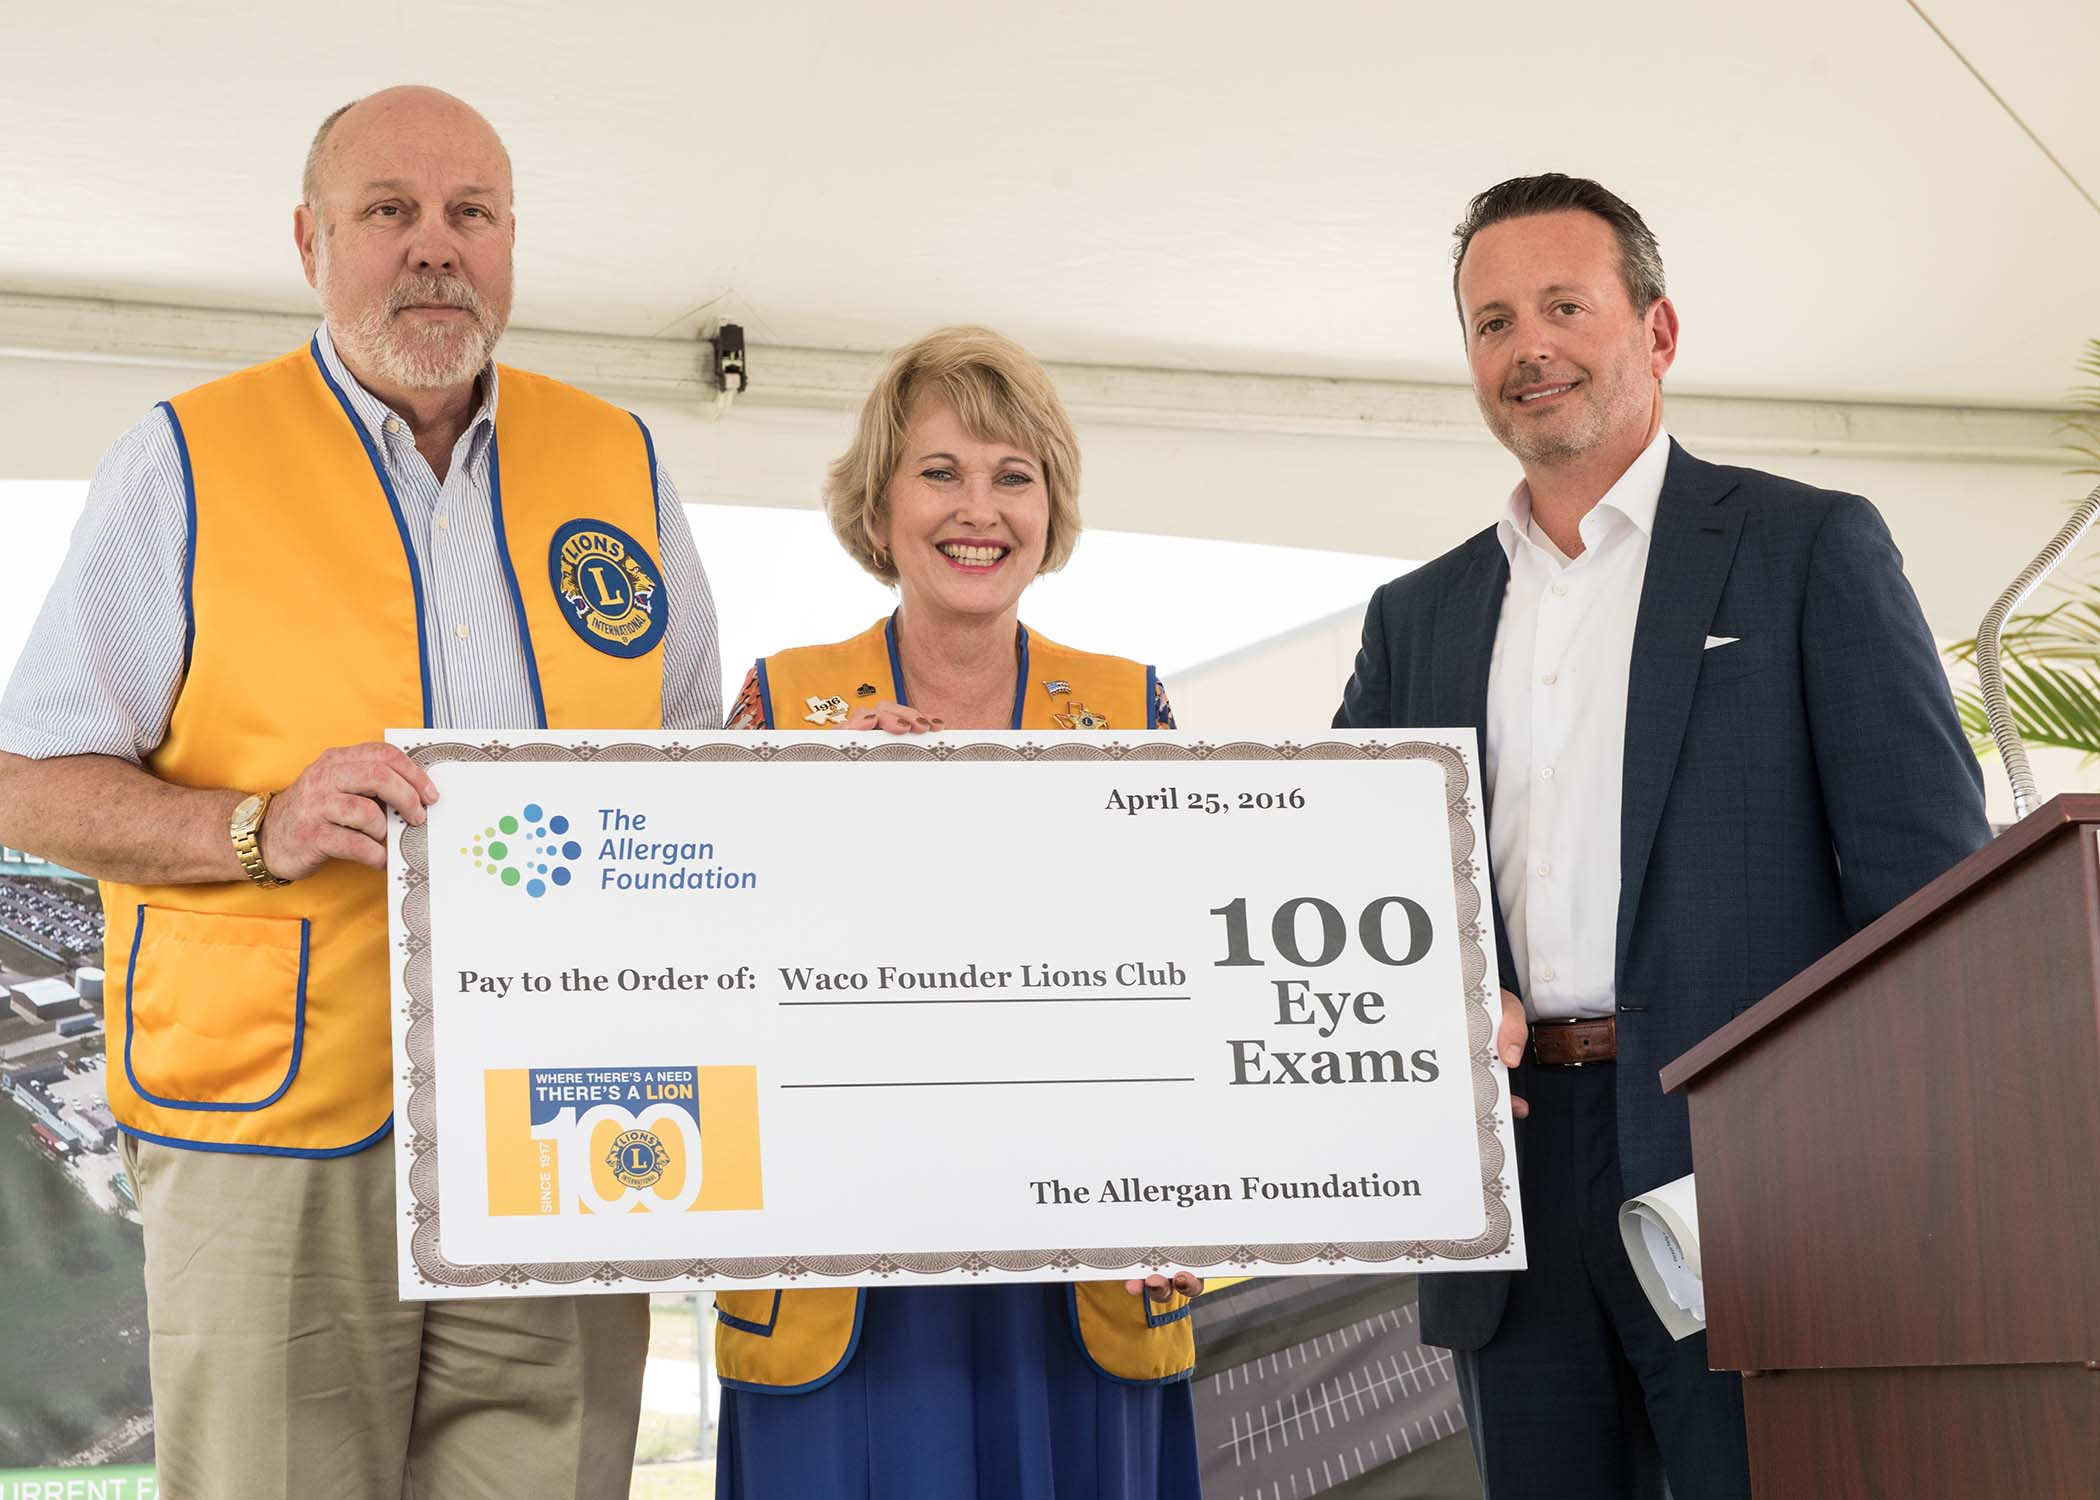 Allergan President & CEO Brent Saunders presents a donation of 100 eye exams to Waco Lions Club President Buck Rogers and Past President and Vision Screening Chair Louise Ann Powell. The donation, by the Allergan Foundation, is in recognition of Lions Club International's 100 year anniversary The donation will allow the Waco Founders Lions Club to initiate a pilot project coordinating with local eye care professionals to support eye exams for those in need in the Waco community.